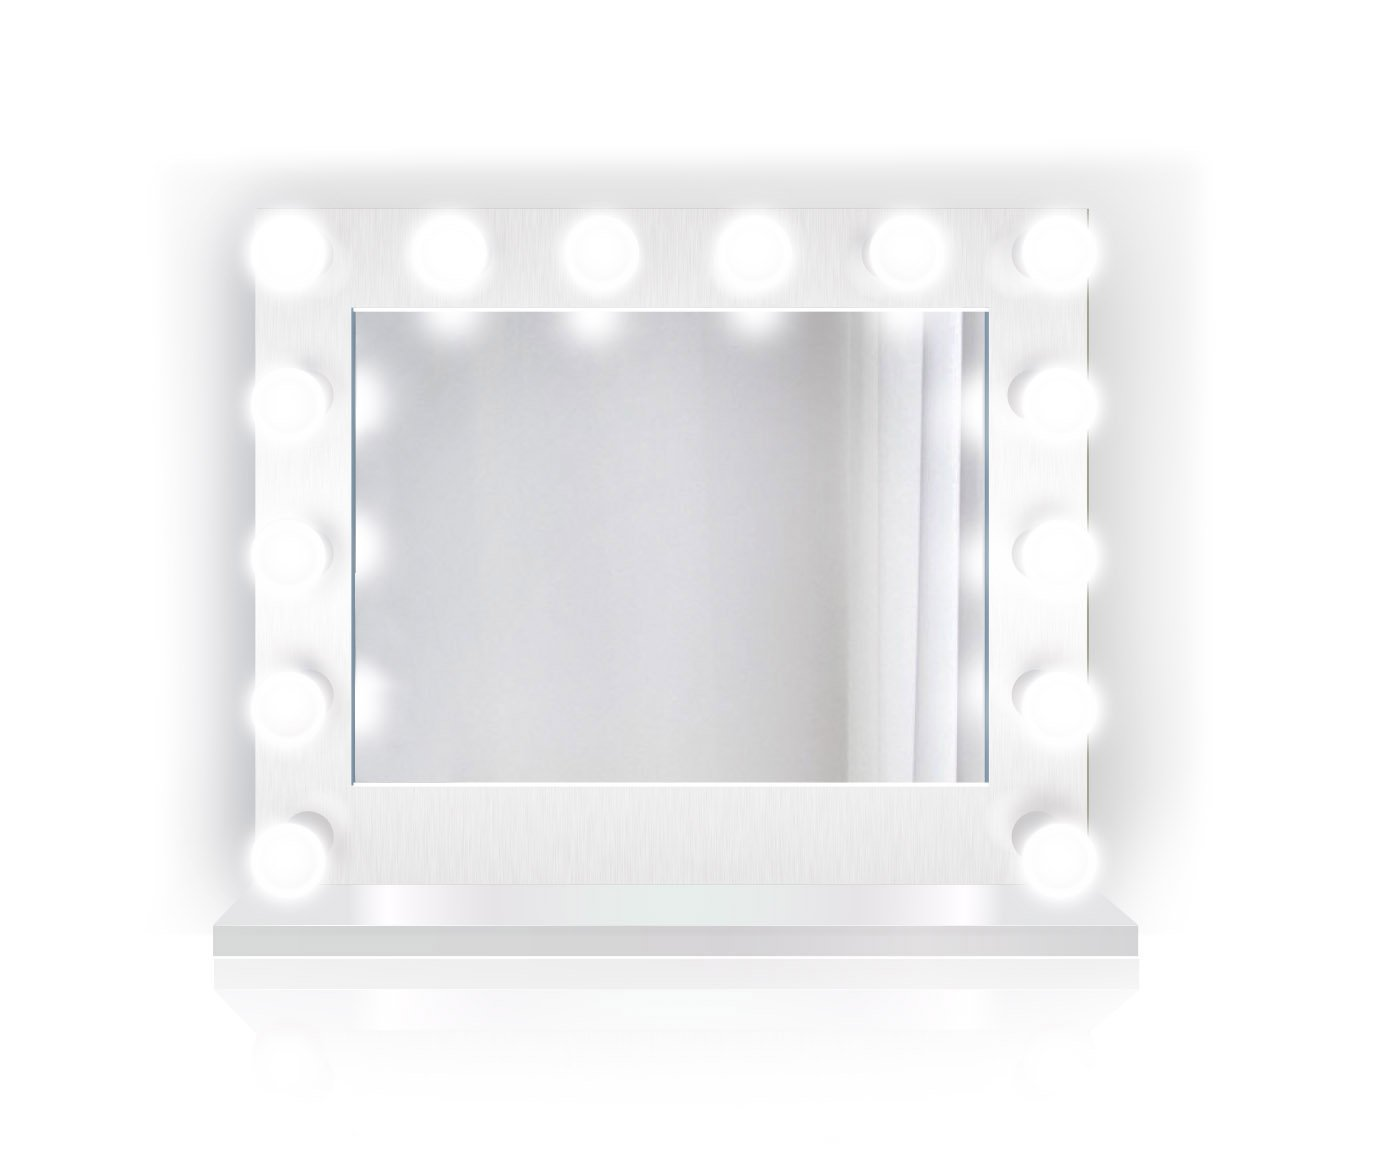 31 inch x 25 inch Lighted Hollywood Vanity Mirror   LED Makeup Mirror  Table Top Or Wall Mount   Plug-in